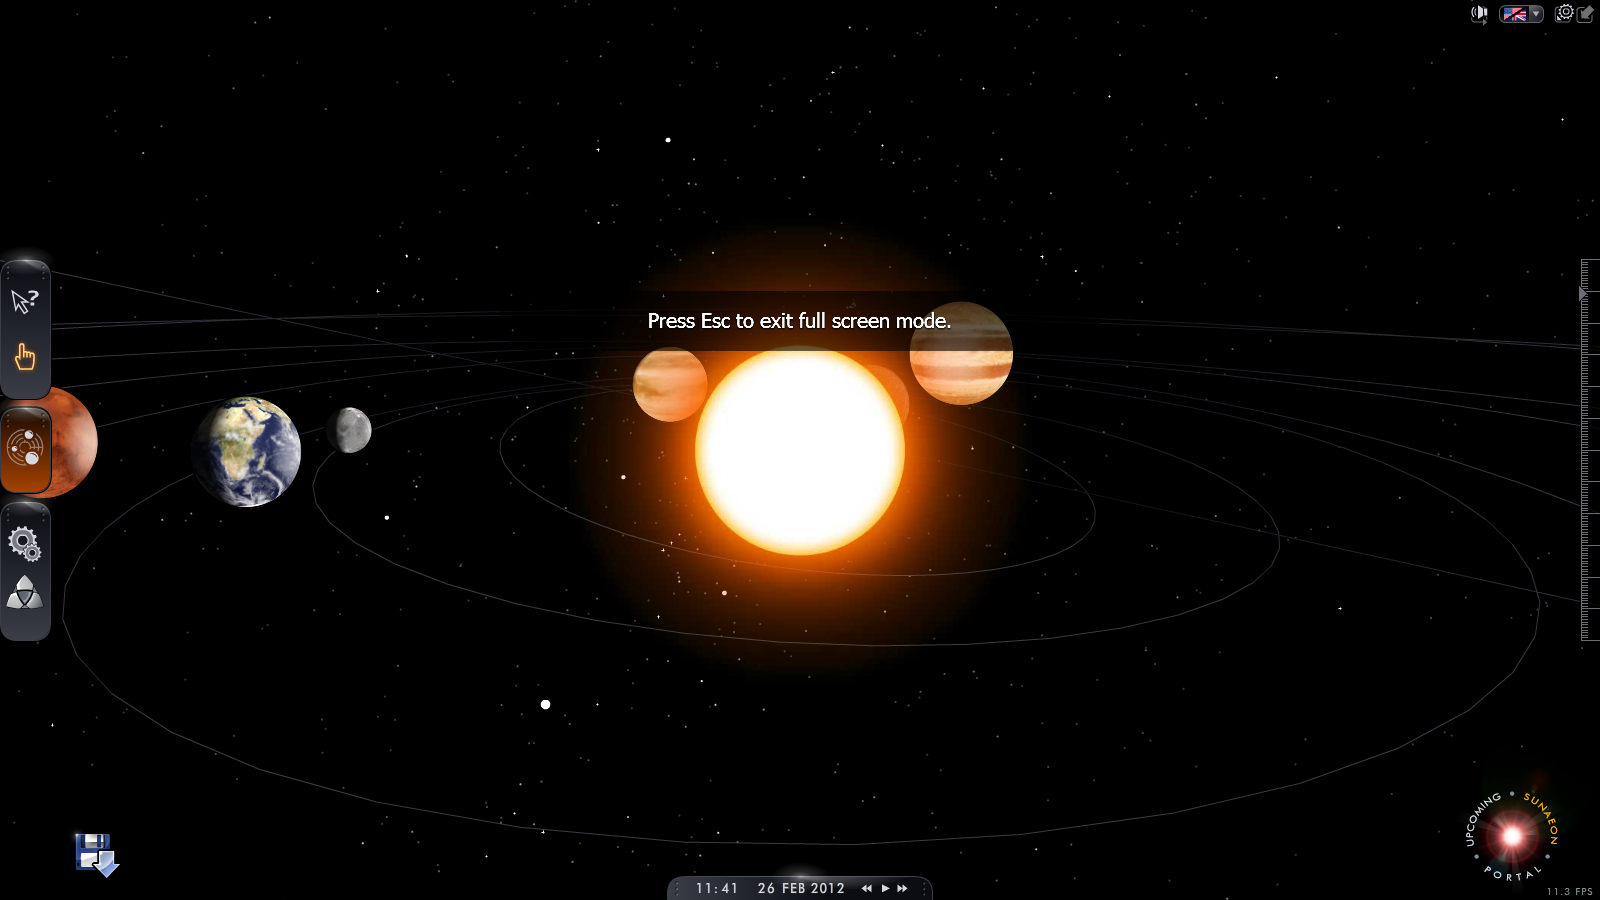 All The Planets In The Solar System (page 2) - Pics about ...